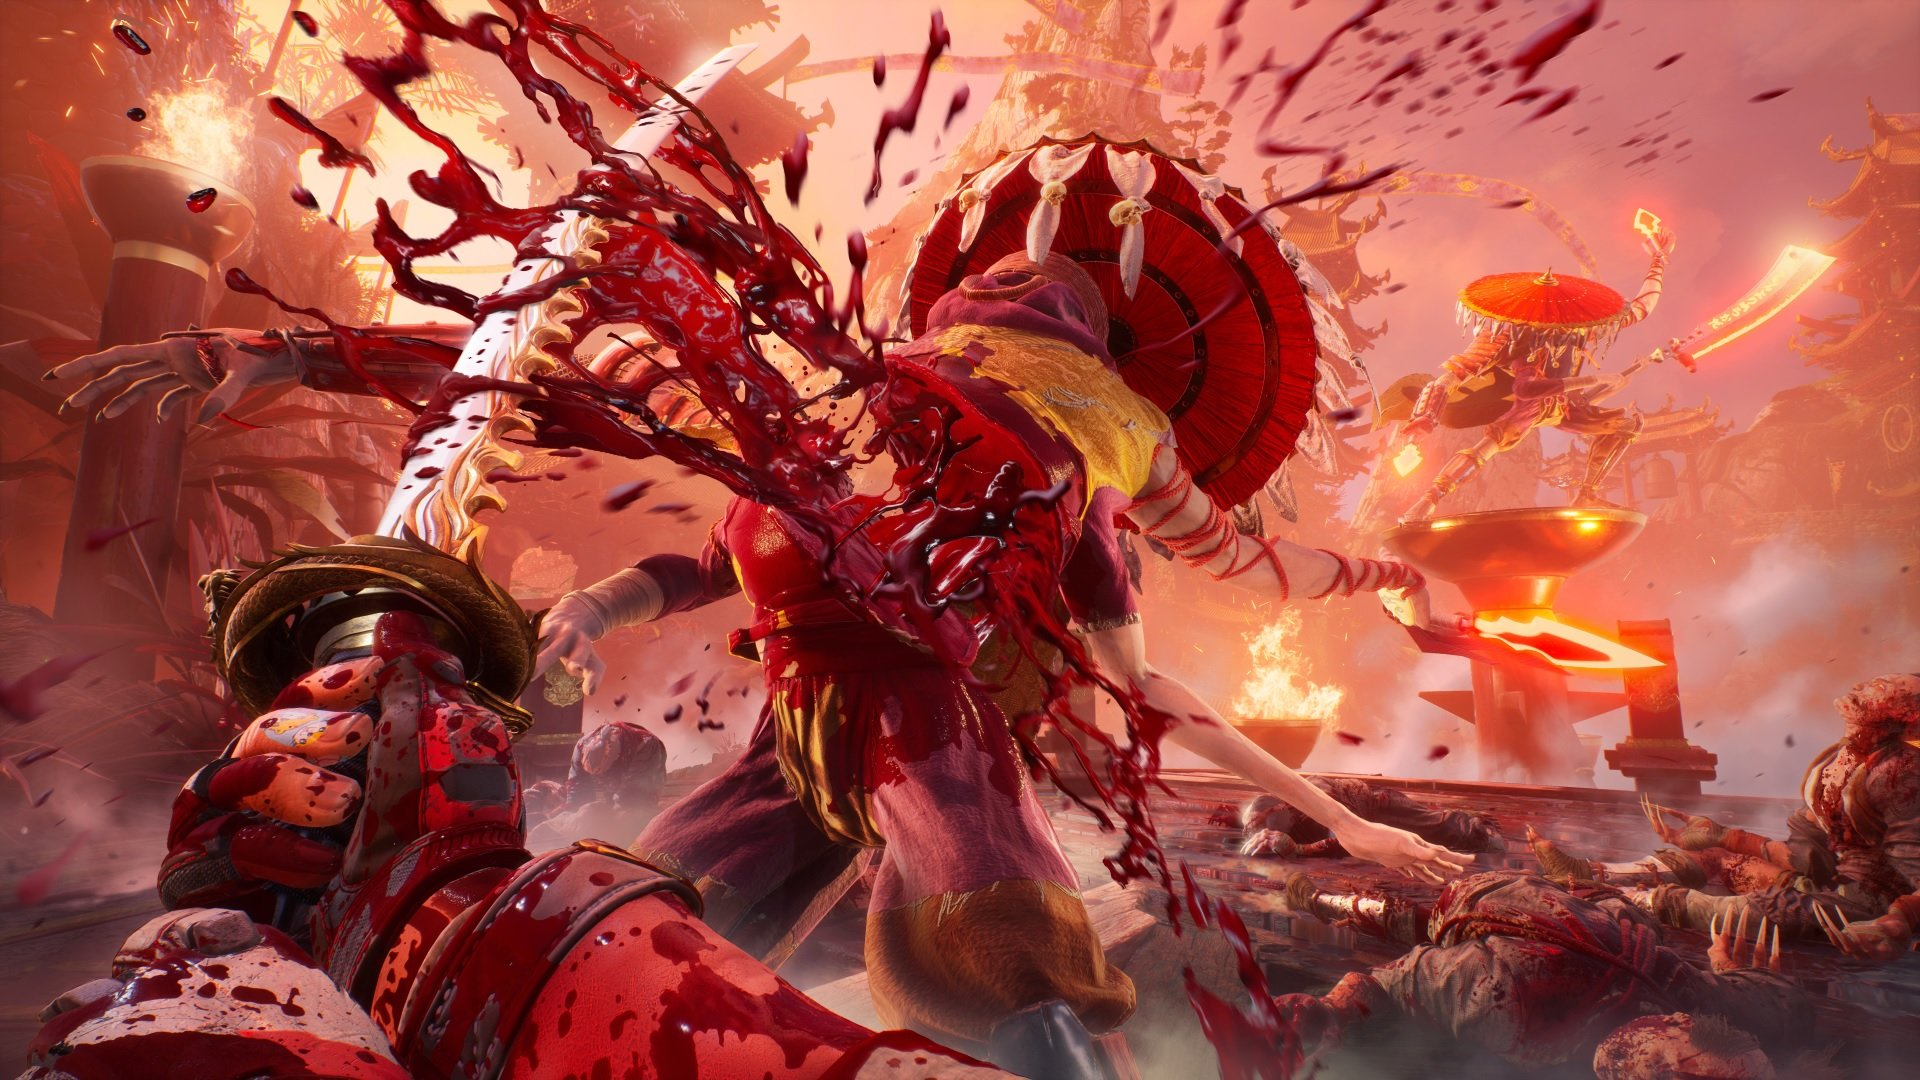 Shadow Warrior 3 is bringing the Doomsday Device to PS4 and Xbox One